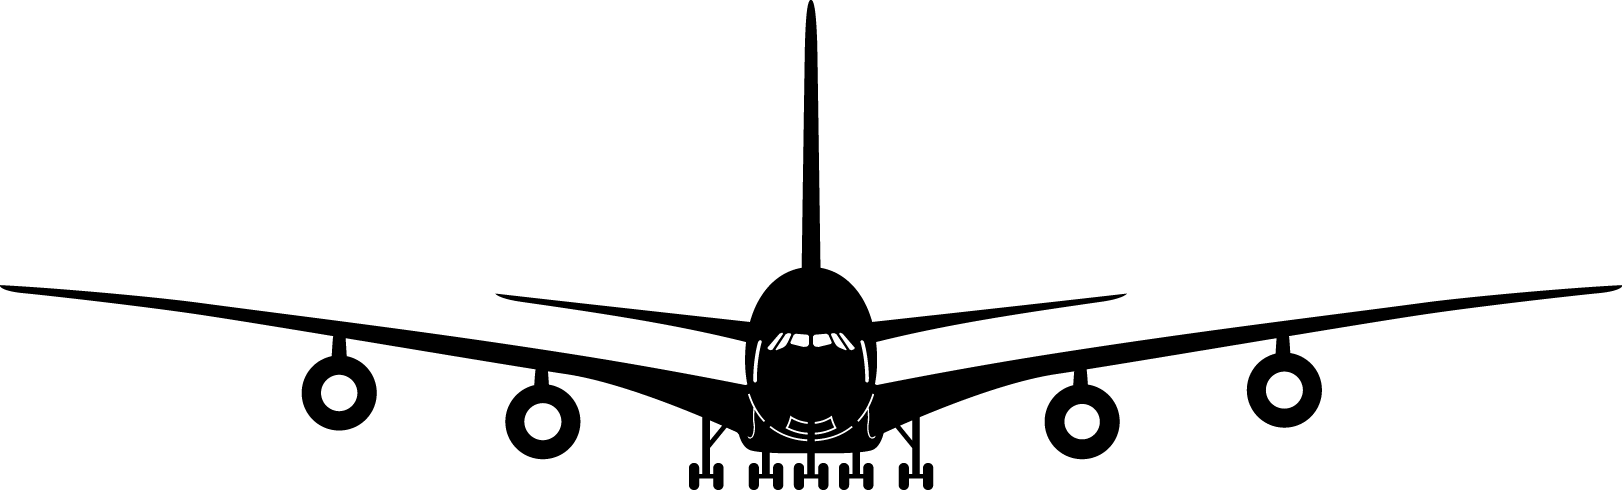 Plane clipart front.  collection of airplane